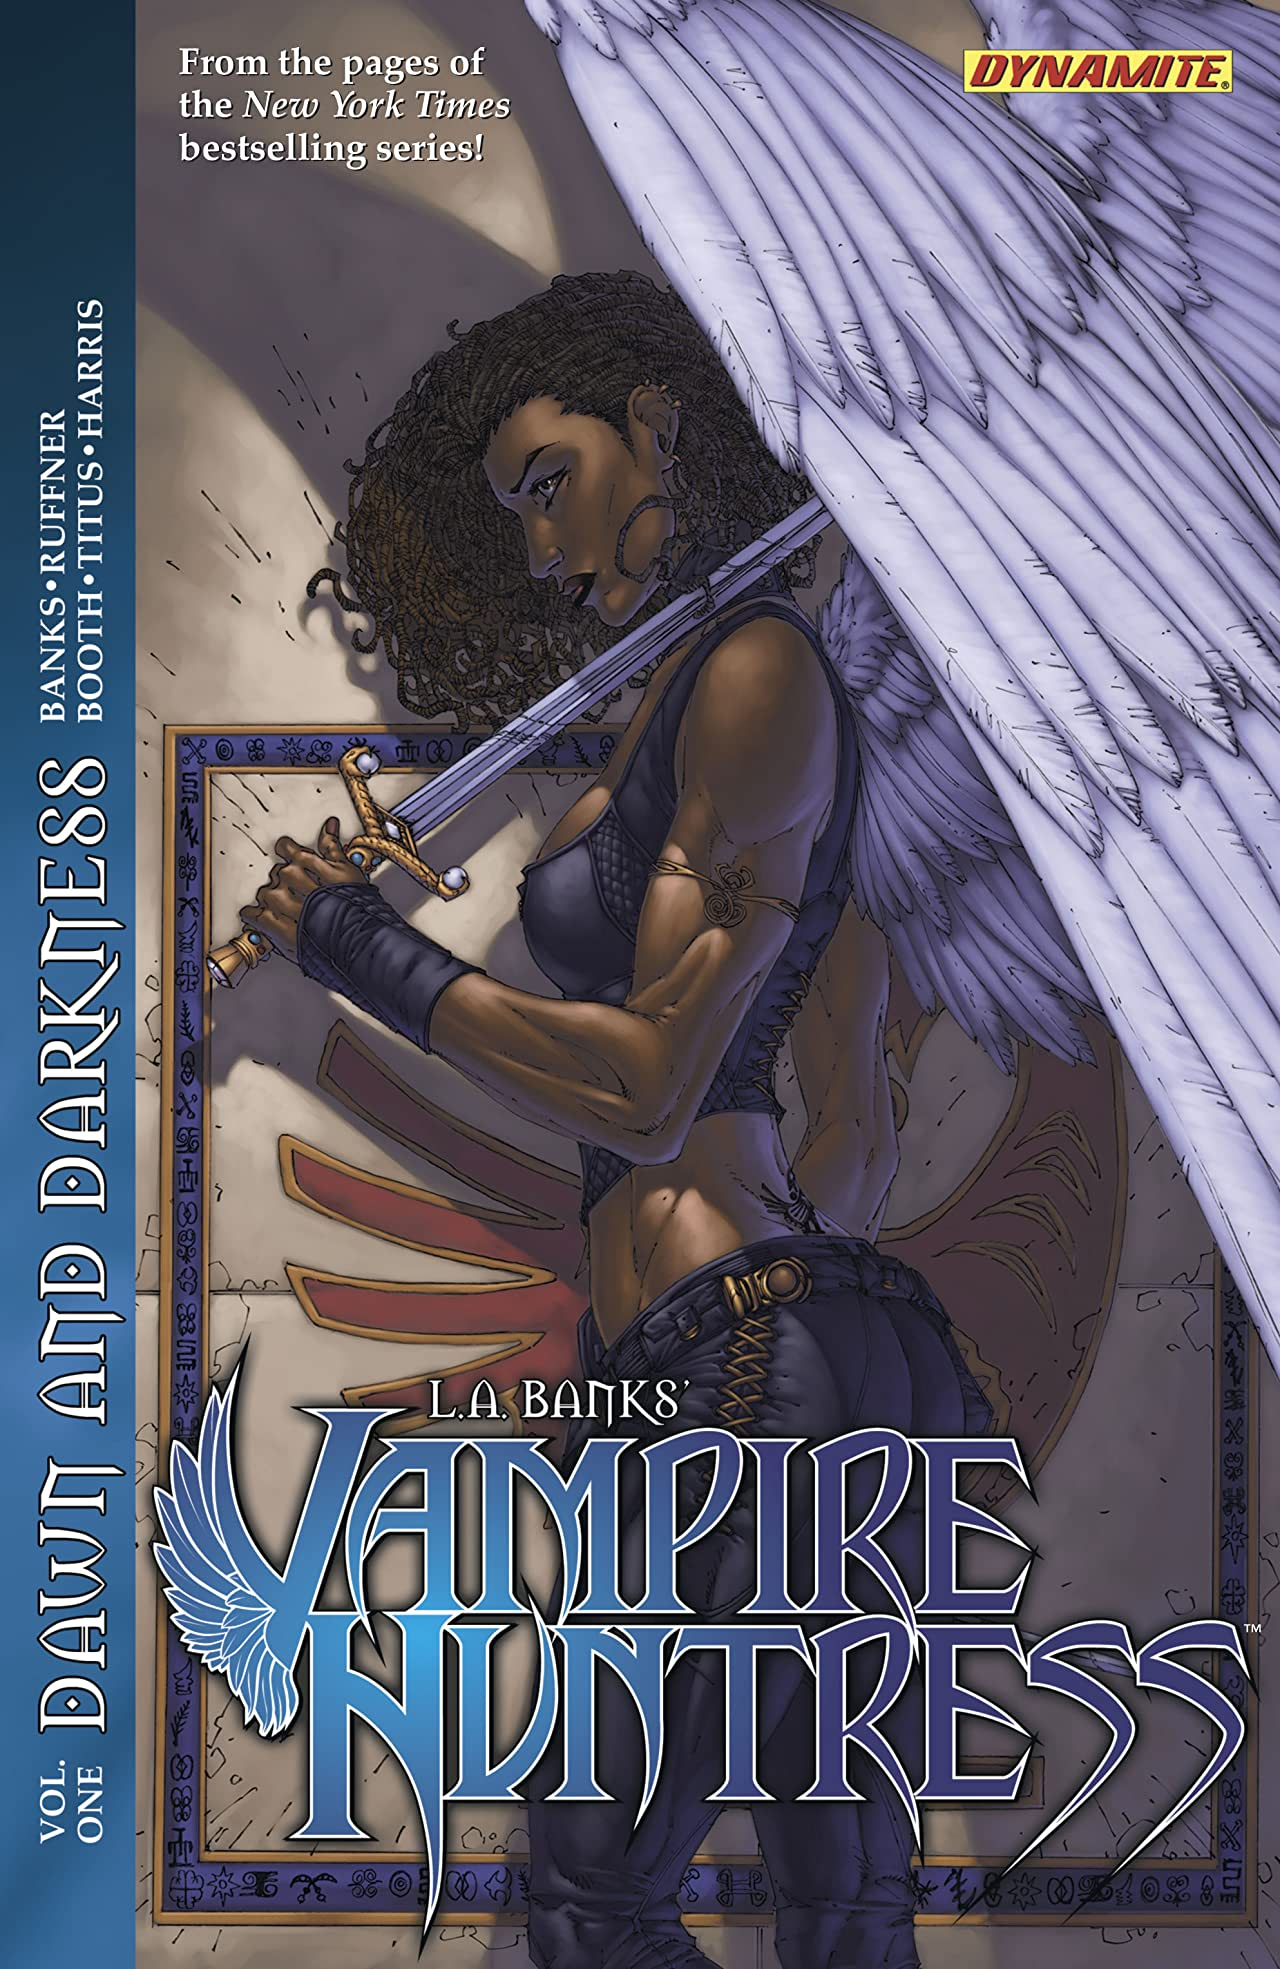 L.A. Banks' Vampire Huntress: Dawn and Darkness